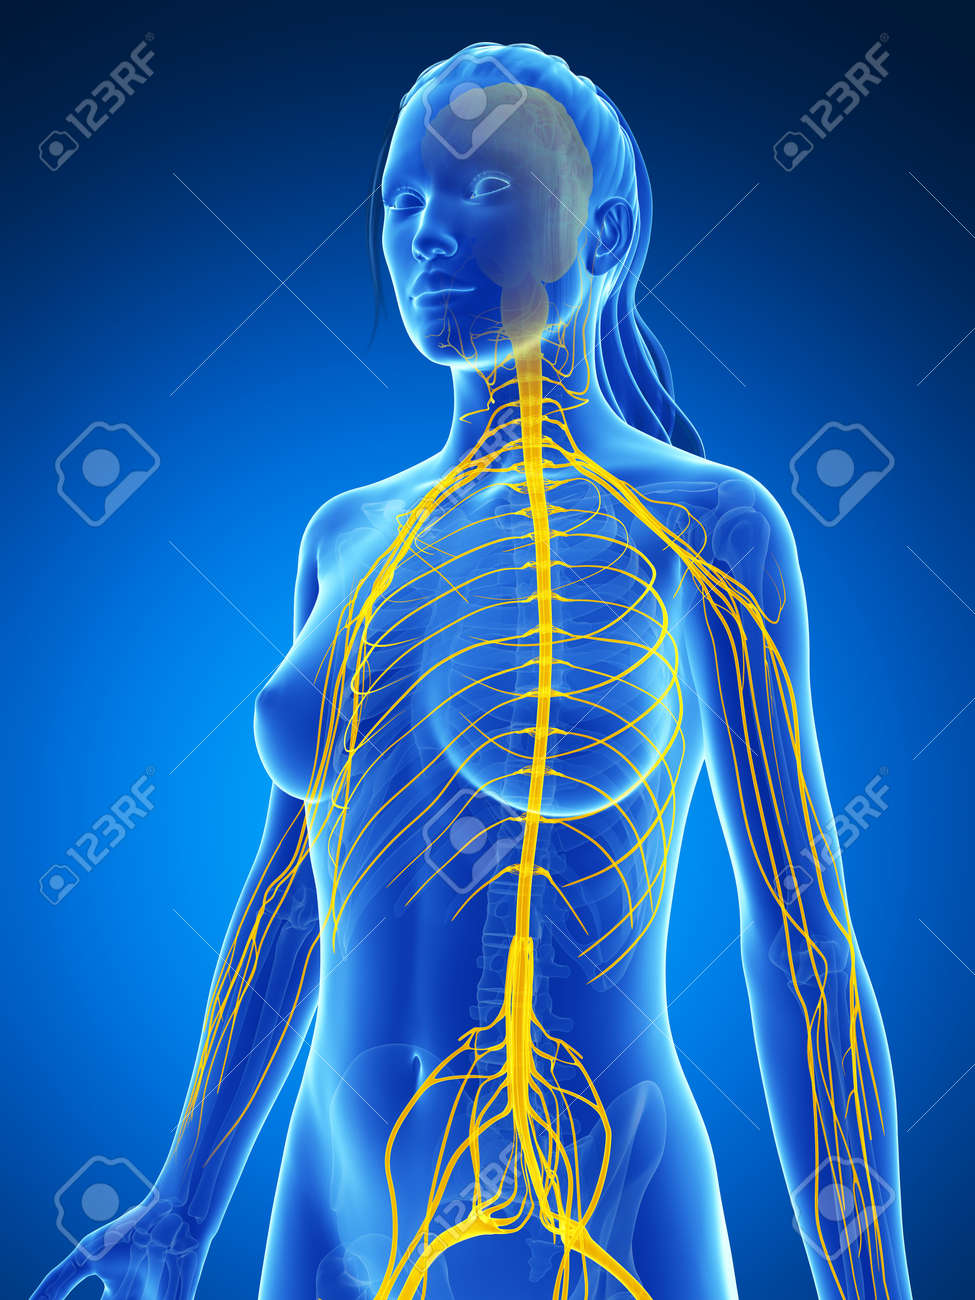 3d rendered illustration of the female nervous system stock photo 3d rendered illustration of the female nervous system stock illustration 18451813 ccuart Choice Image